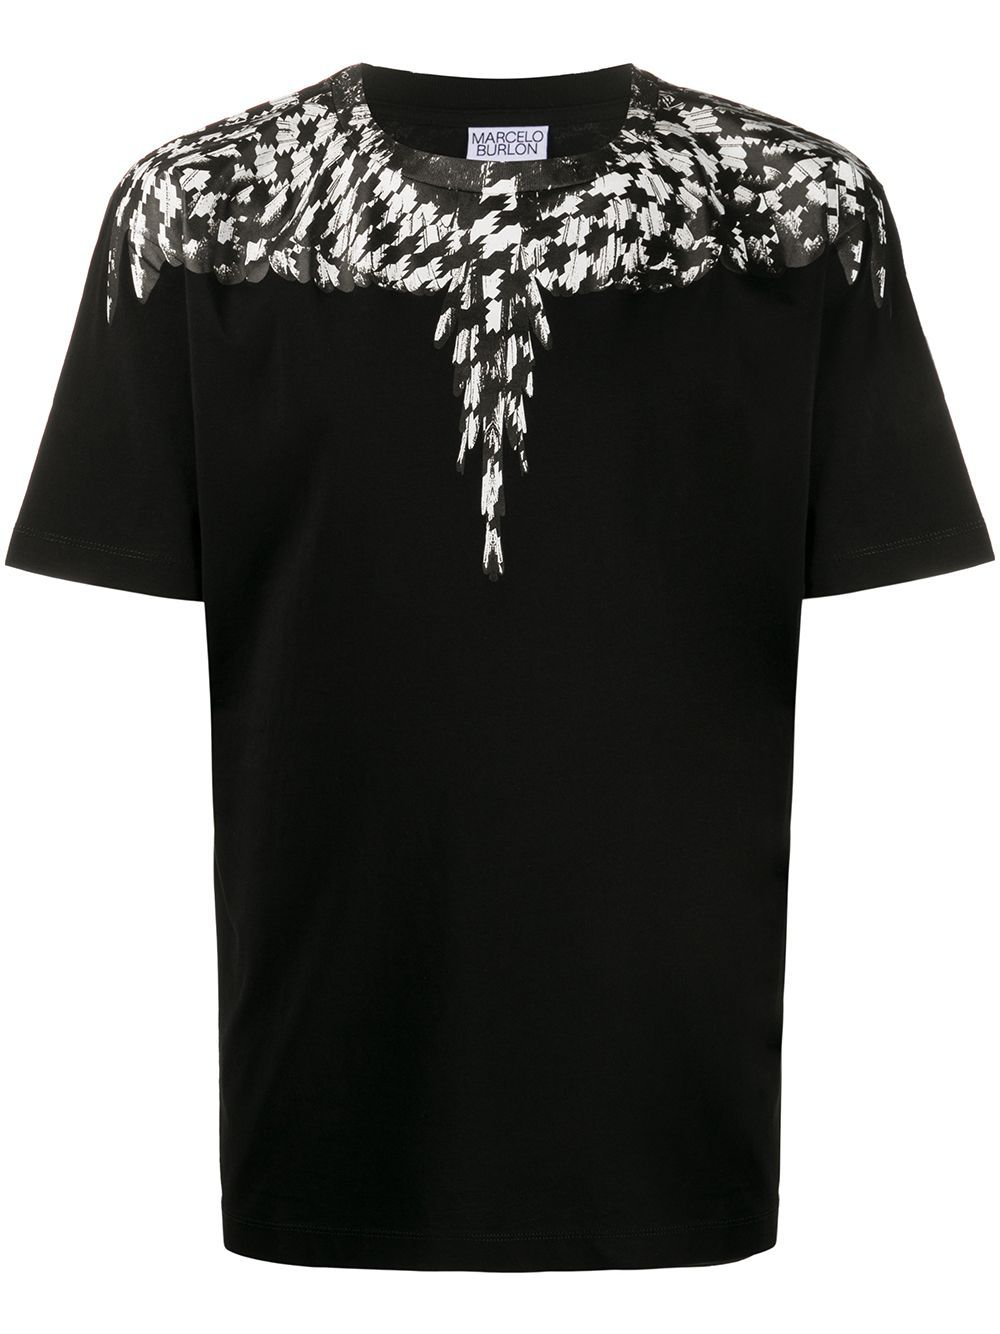 MARCELO BURLON Cross Pattern Wings T-shirt Black